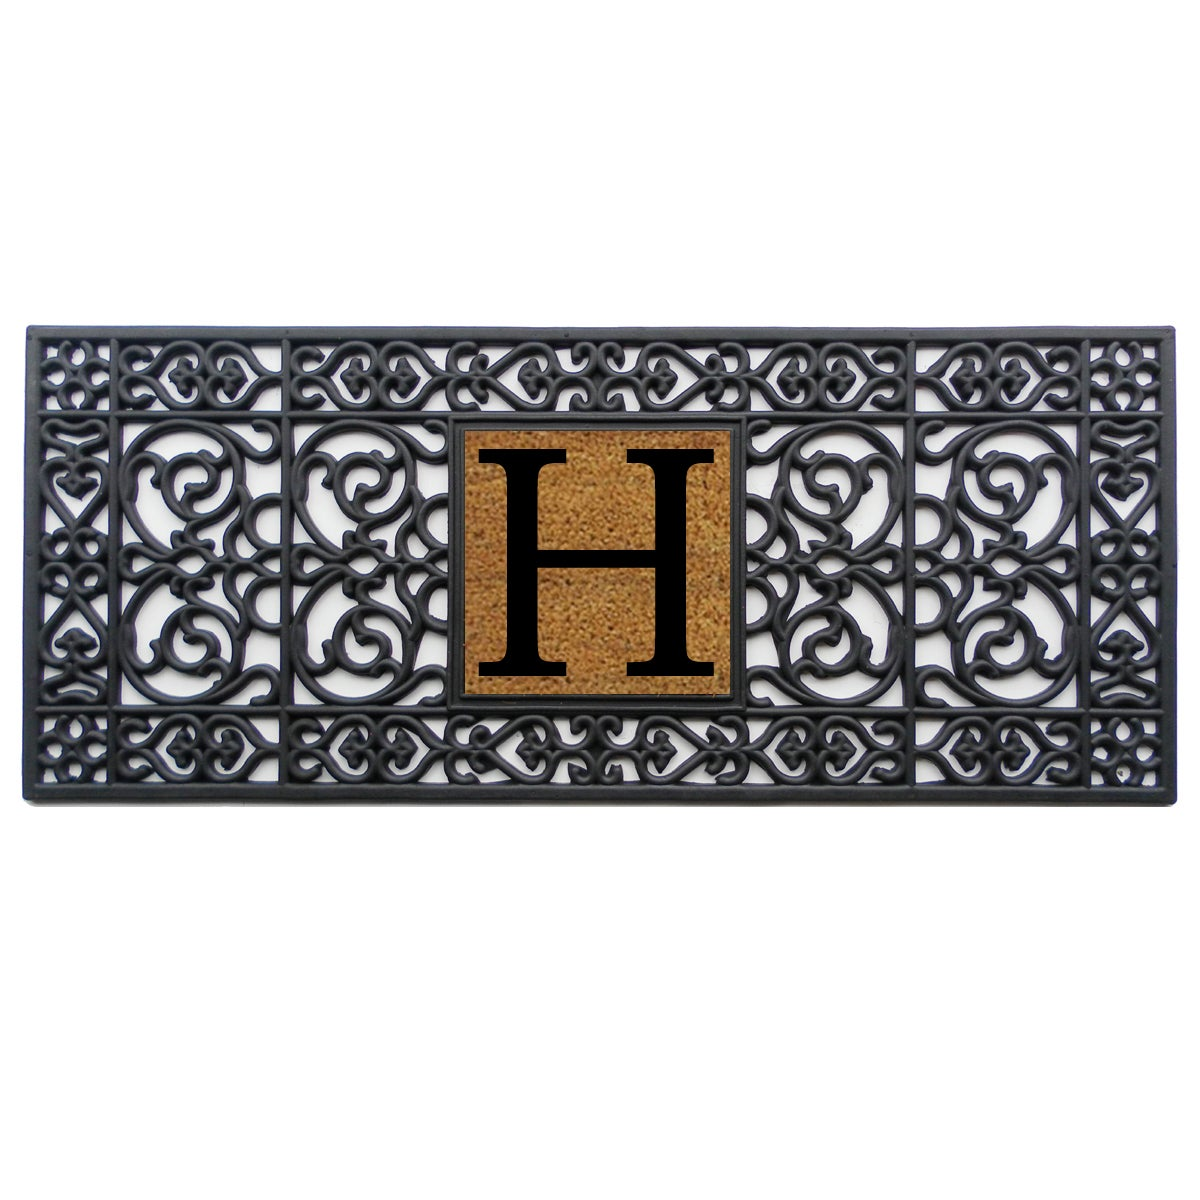 charcoal with matting mats speckled rubber barrier backed entrance door mat collections products runners grey black